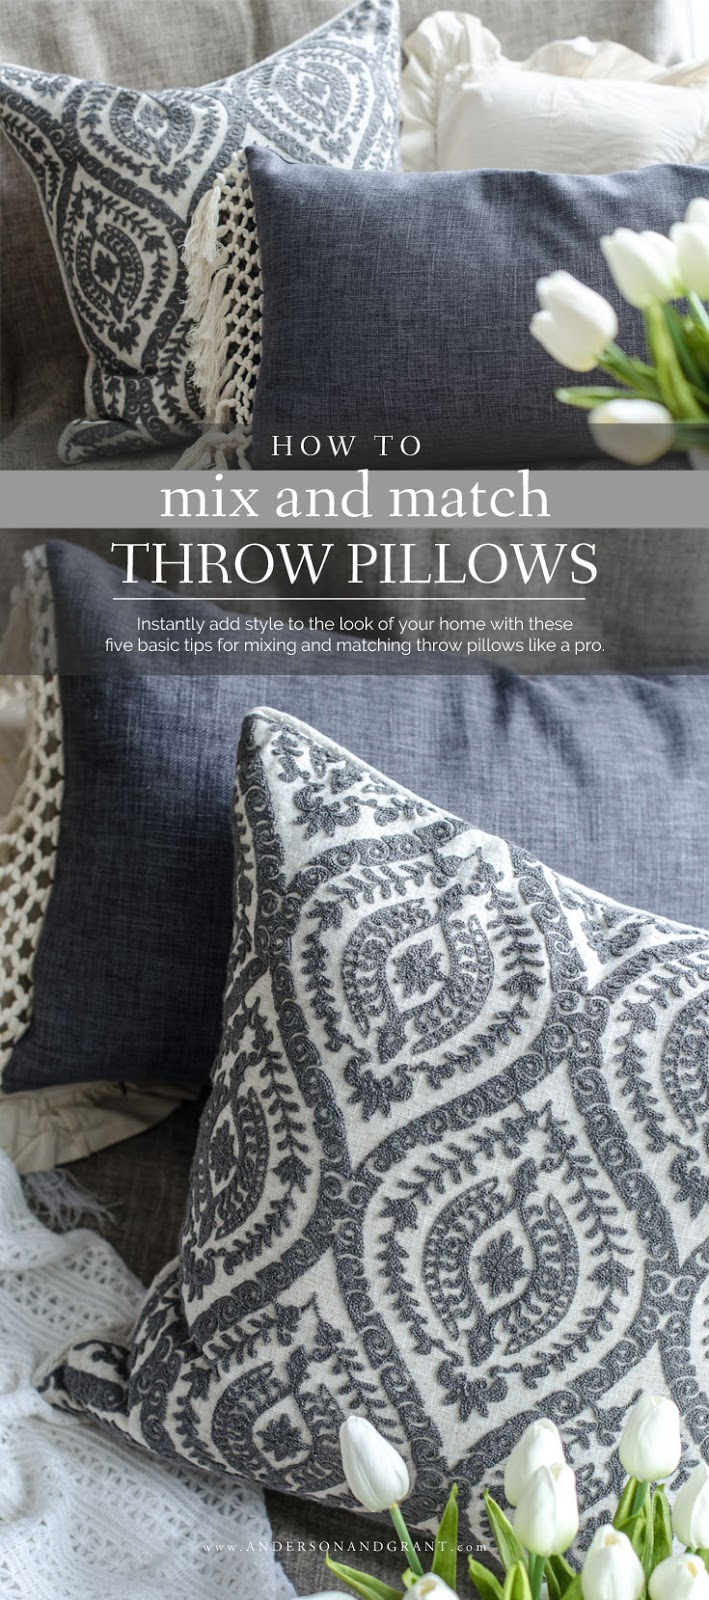 Wondering how to coordinate throw pillows for your living room decor? Check out this post filled with tips! #pillows #decorating #decoratewithpillows #andersonandgrant